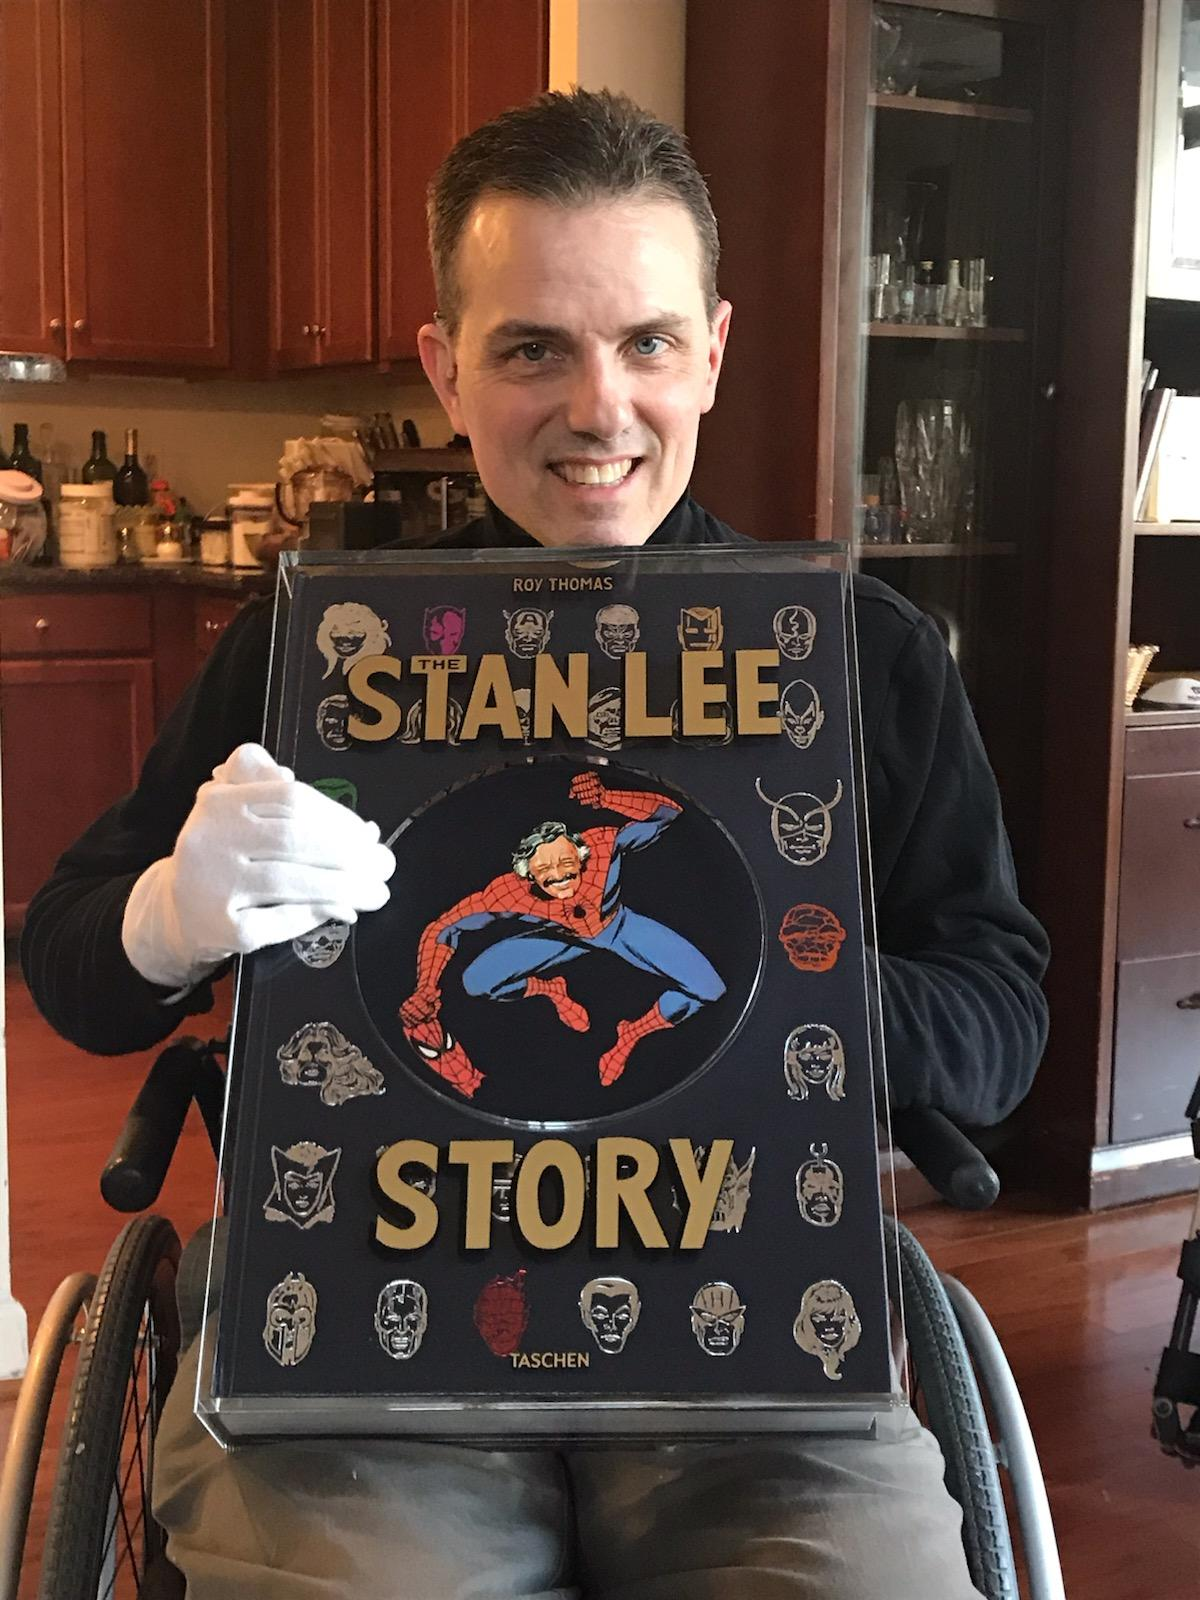 A fantastic early birthday gift (the Stan Lee Story), 12-18.